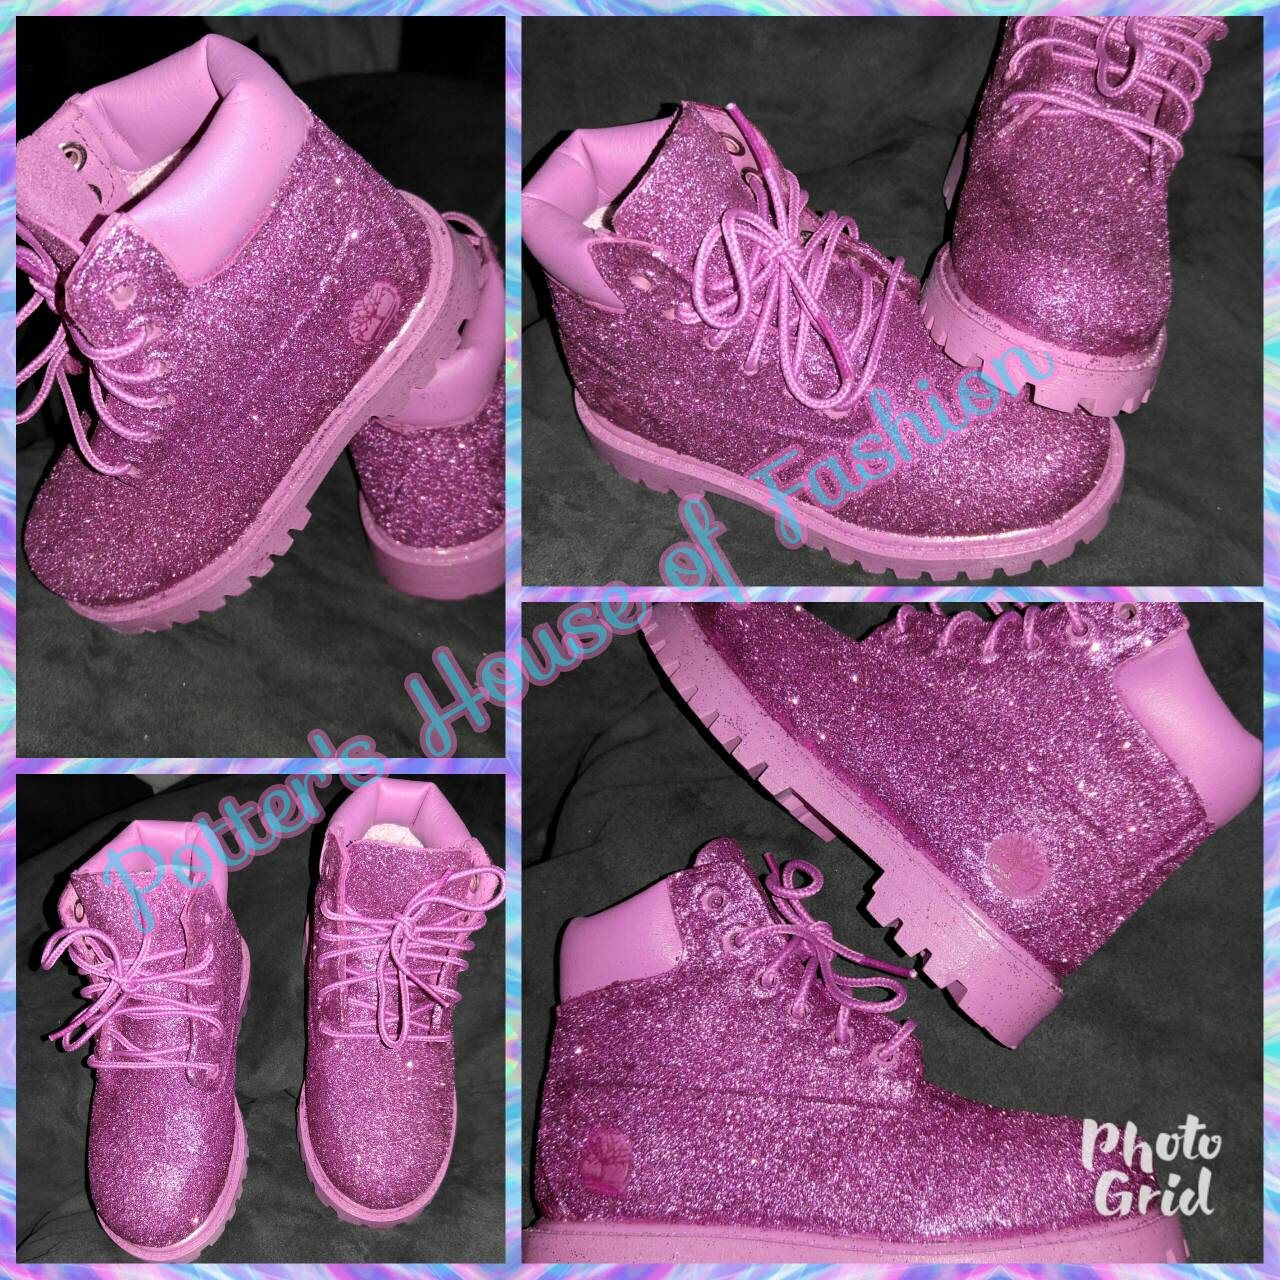 9e2b2a6898e3a4 Baby or toddler custom pink timberland boots with glitter! Can be created in  any size and color. Order your princess some today